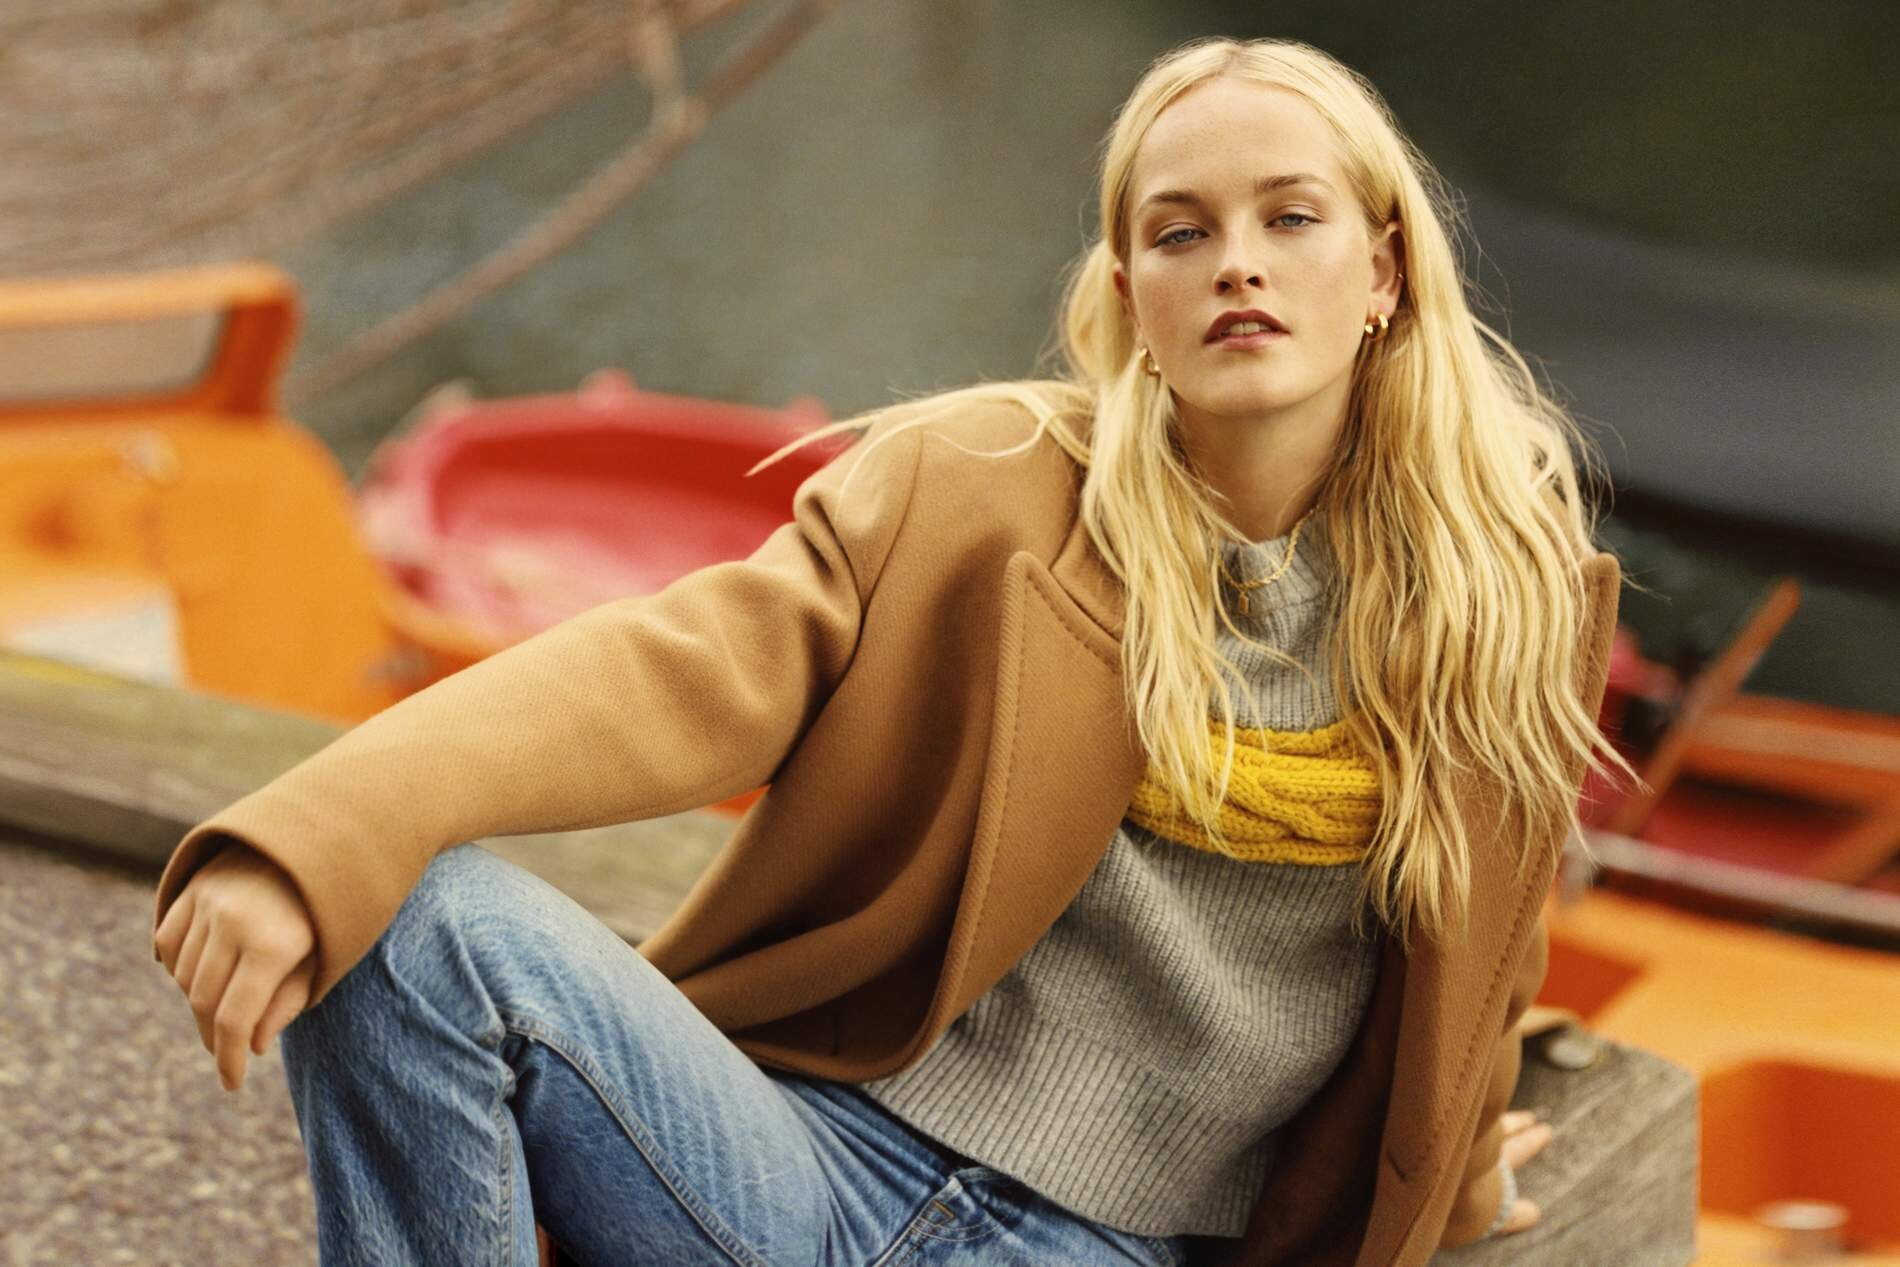 Image Jean Campbell by Quentin De Briey for Porter Edit. Coat, Stella McCartney; sweater, Sacai; jeans, Grlfrnd; earrings, Sophie Buhai; necklace, Stone And Strand